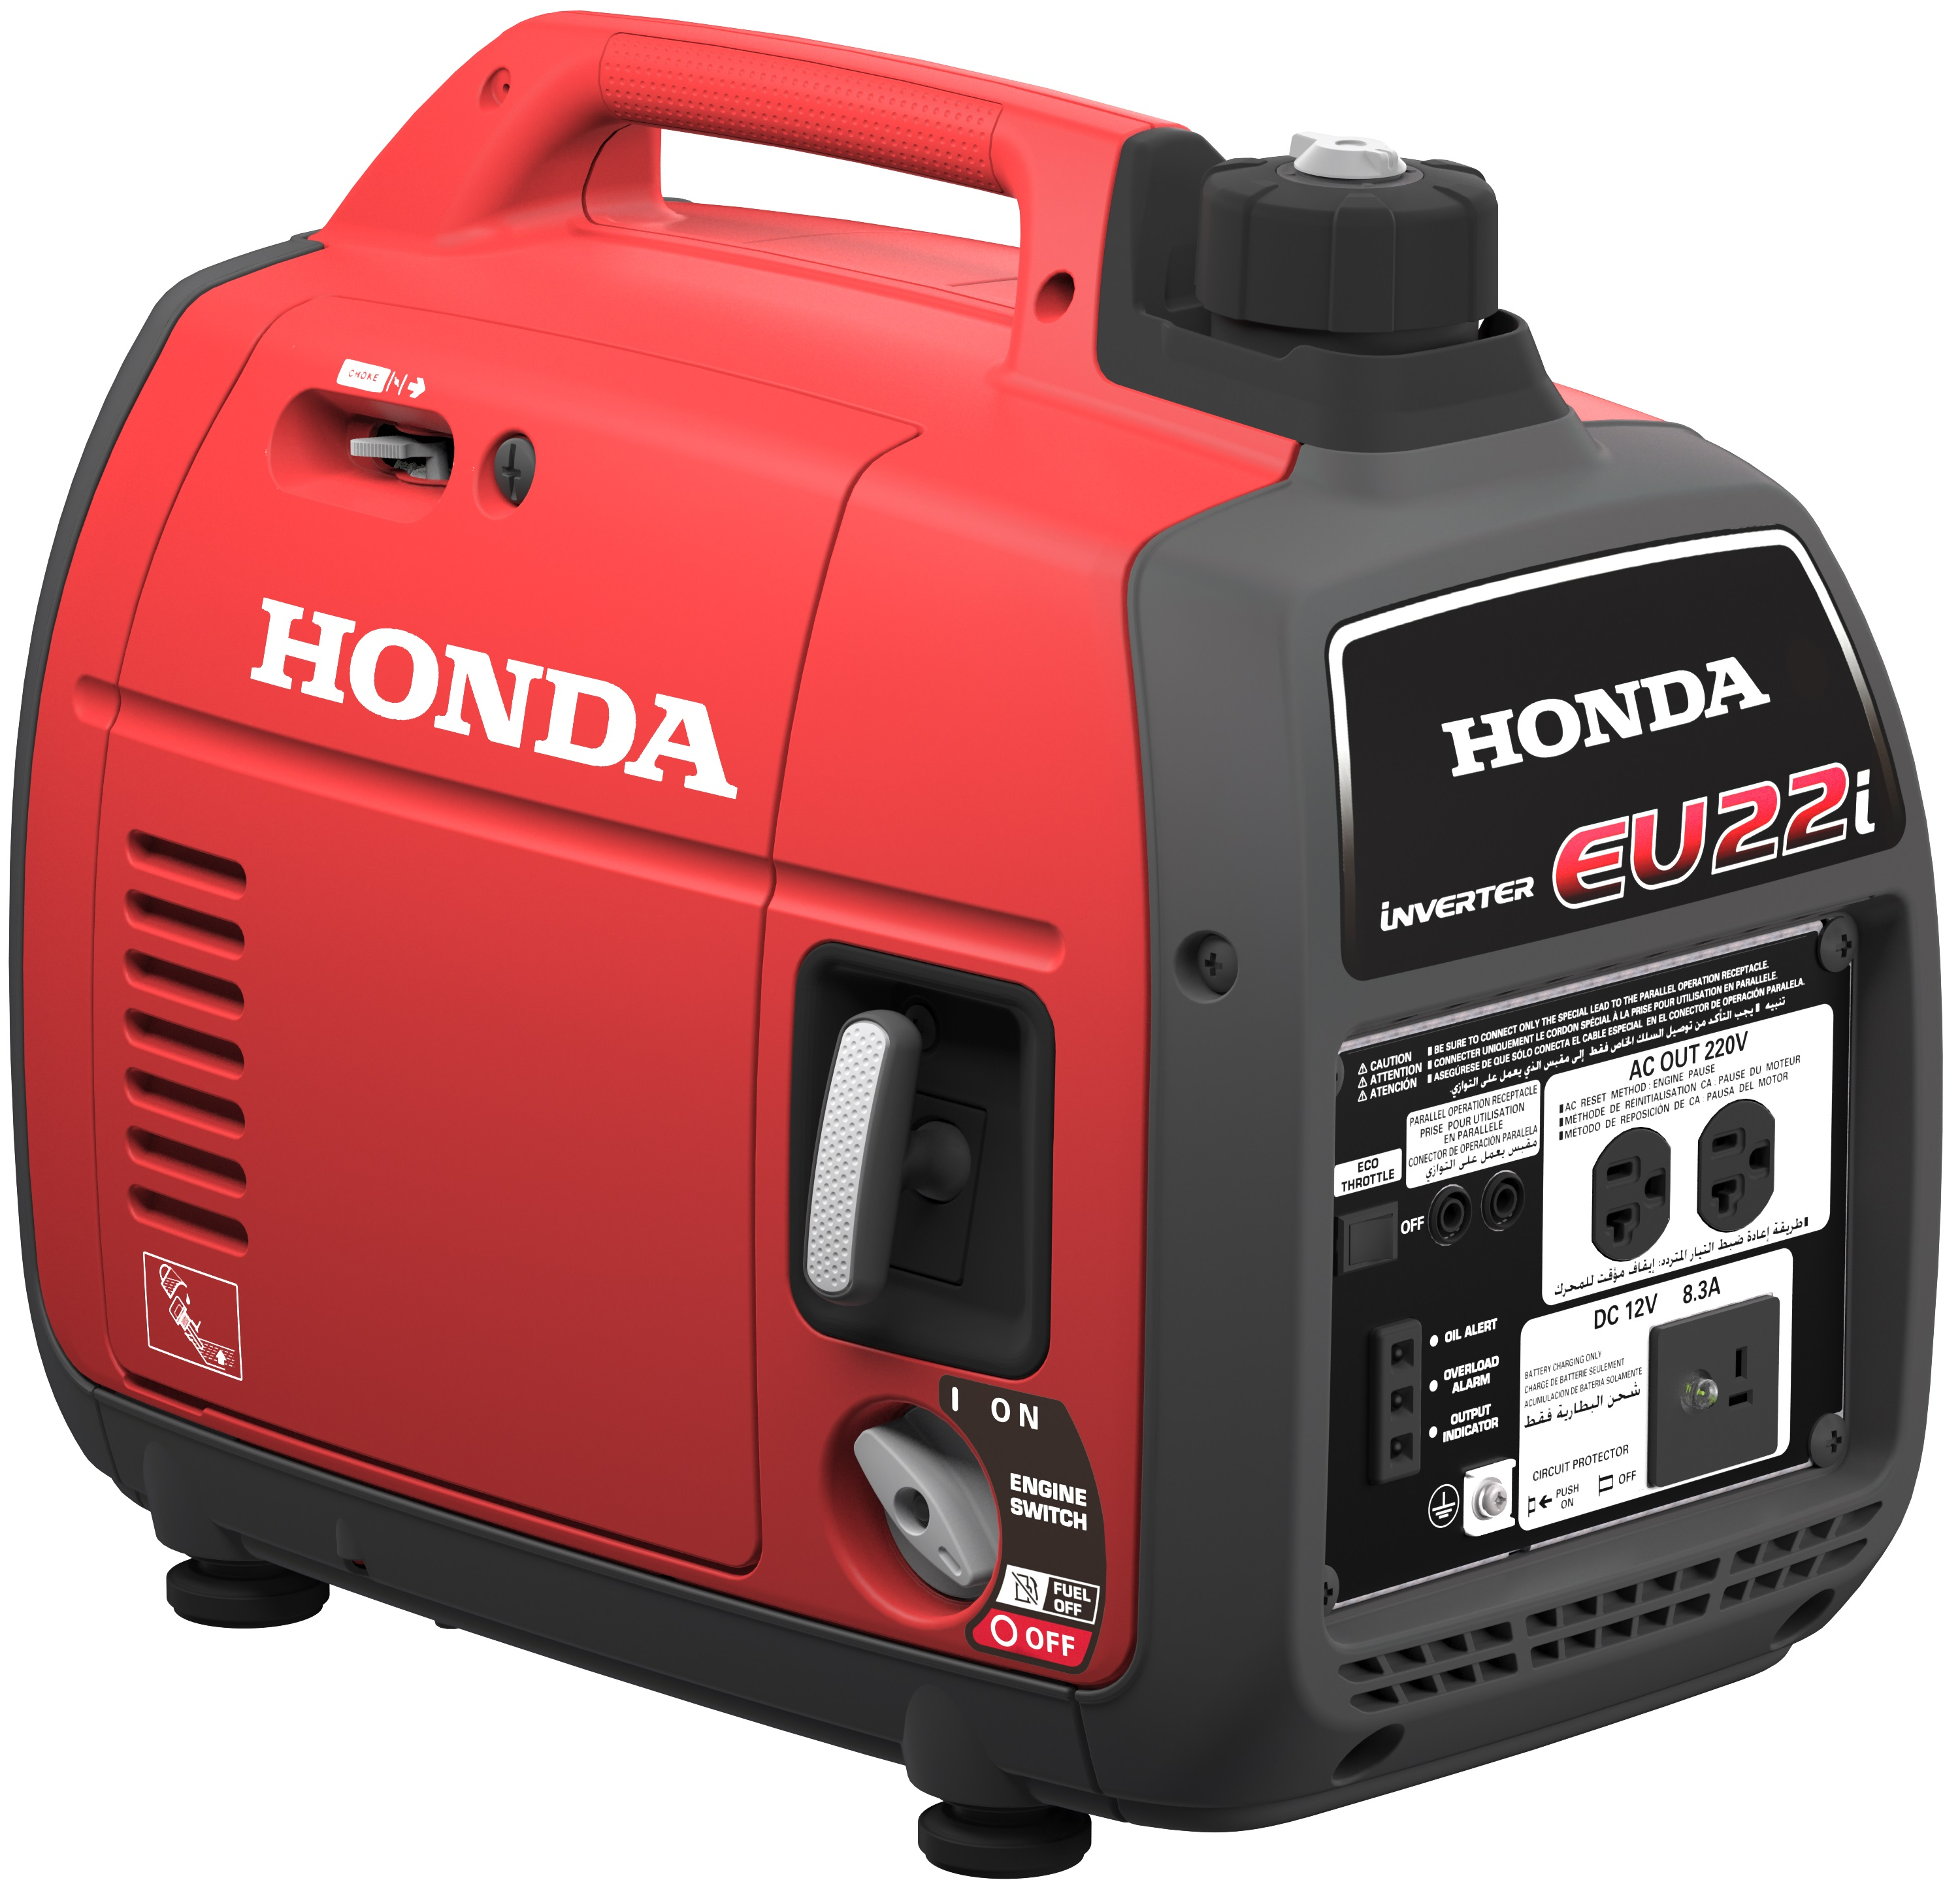 HONDA POWER TOOLS